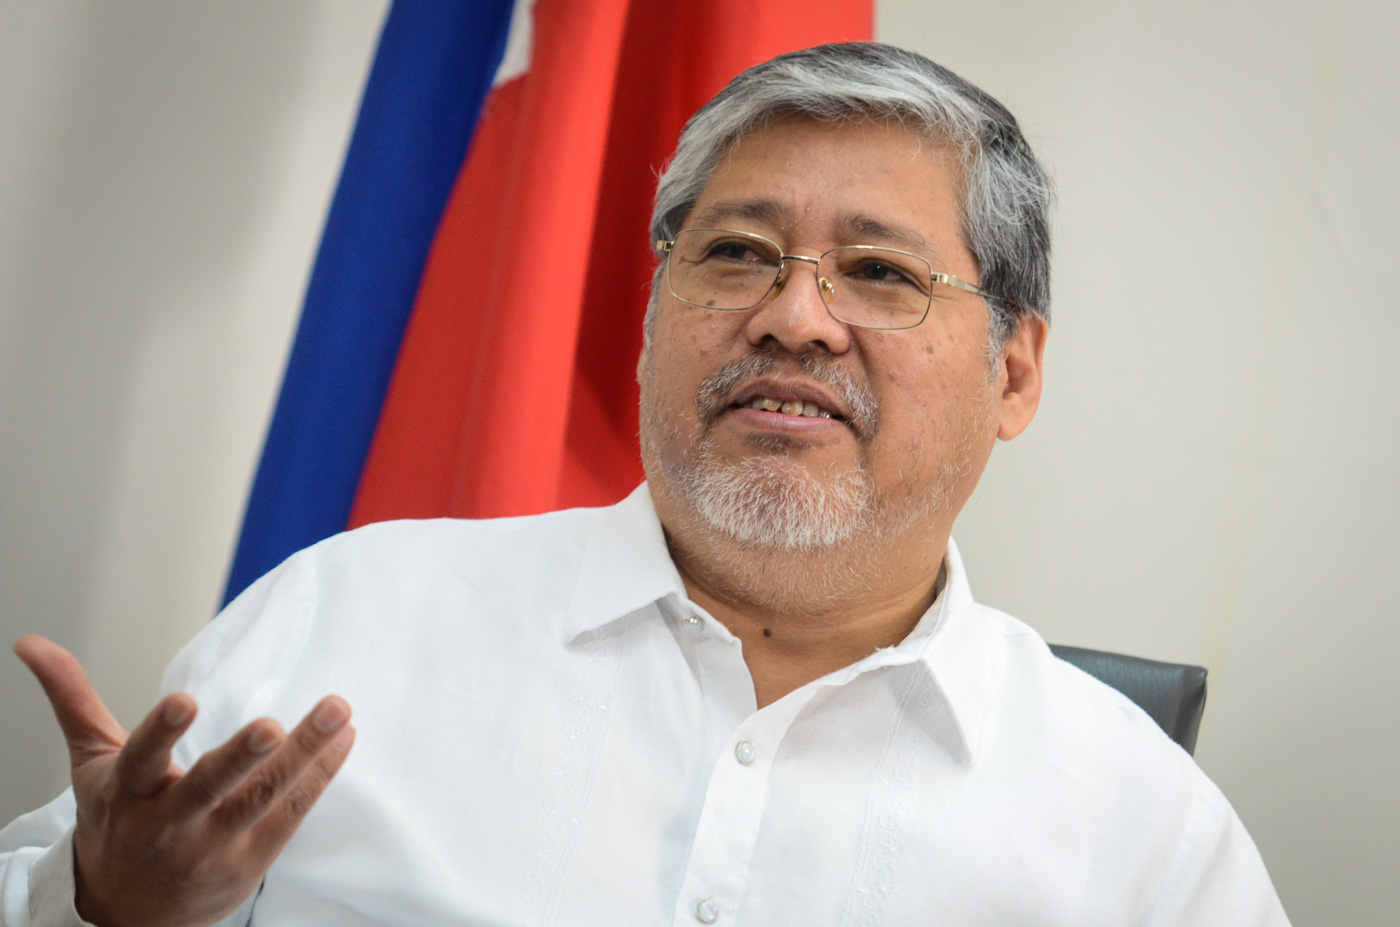 NEW LEADER. Foreign Secretary Enrique Manalo heads the Department of Foreign Affairs after his predecessor, Perfecto Yasay Jr, was rejected by lawmakers. Photo by LeAnne Jazul/Rappler